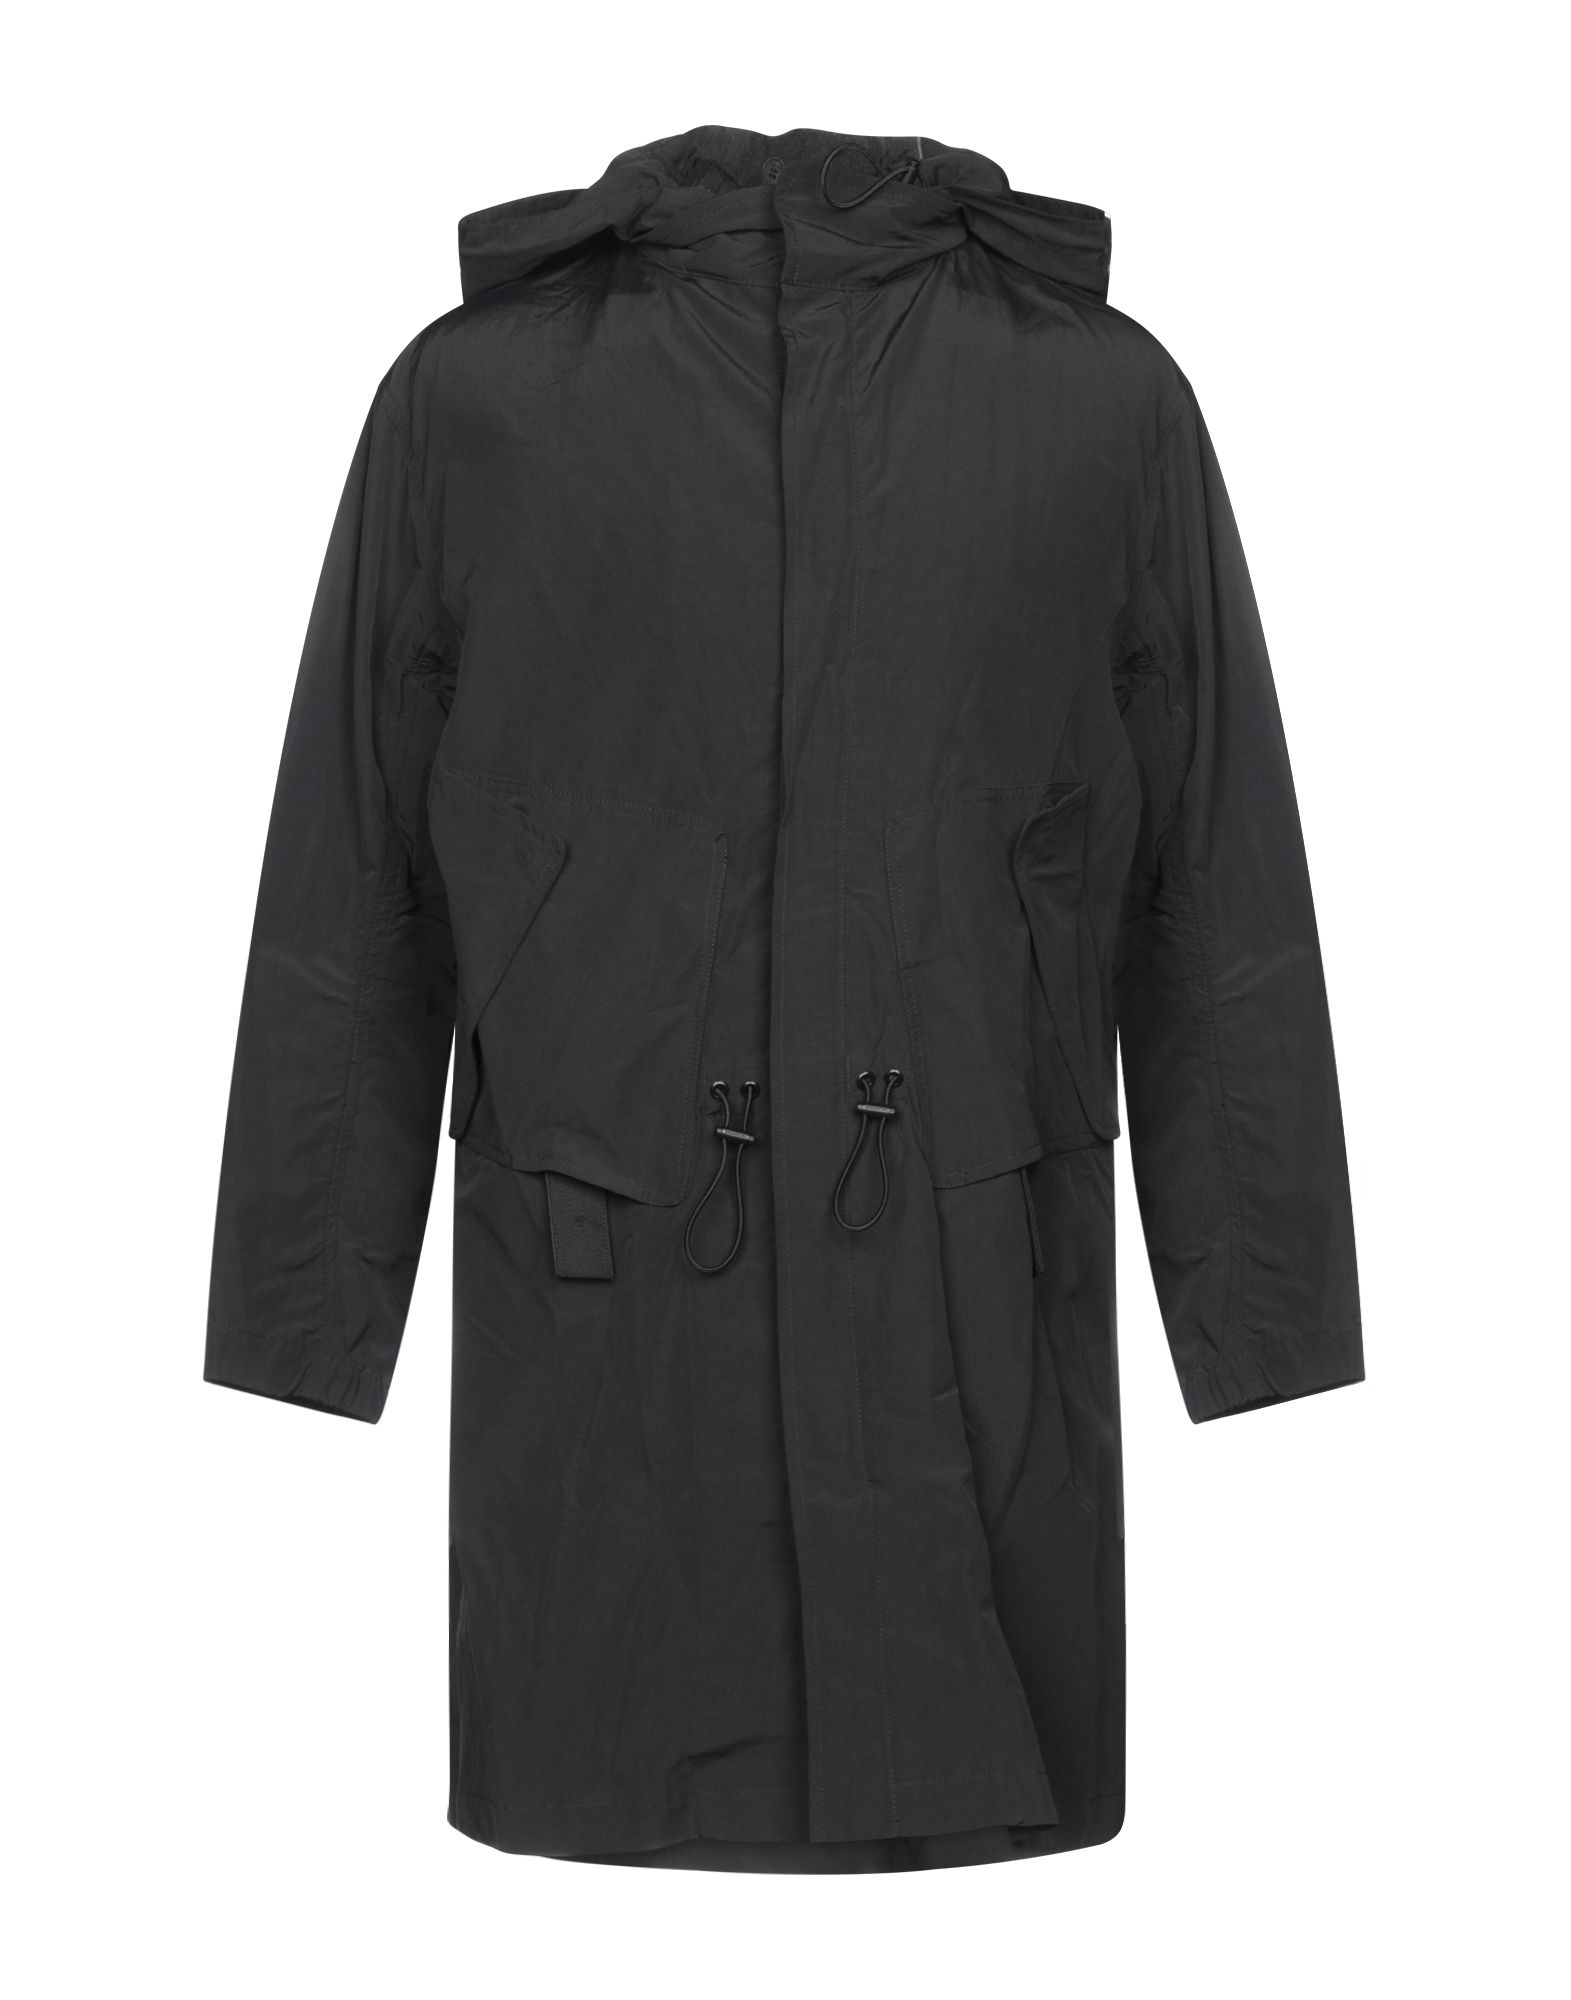 TIM COPPENS Parka in Black